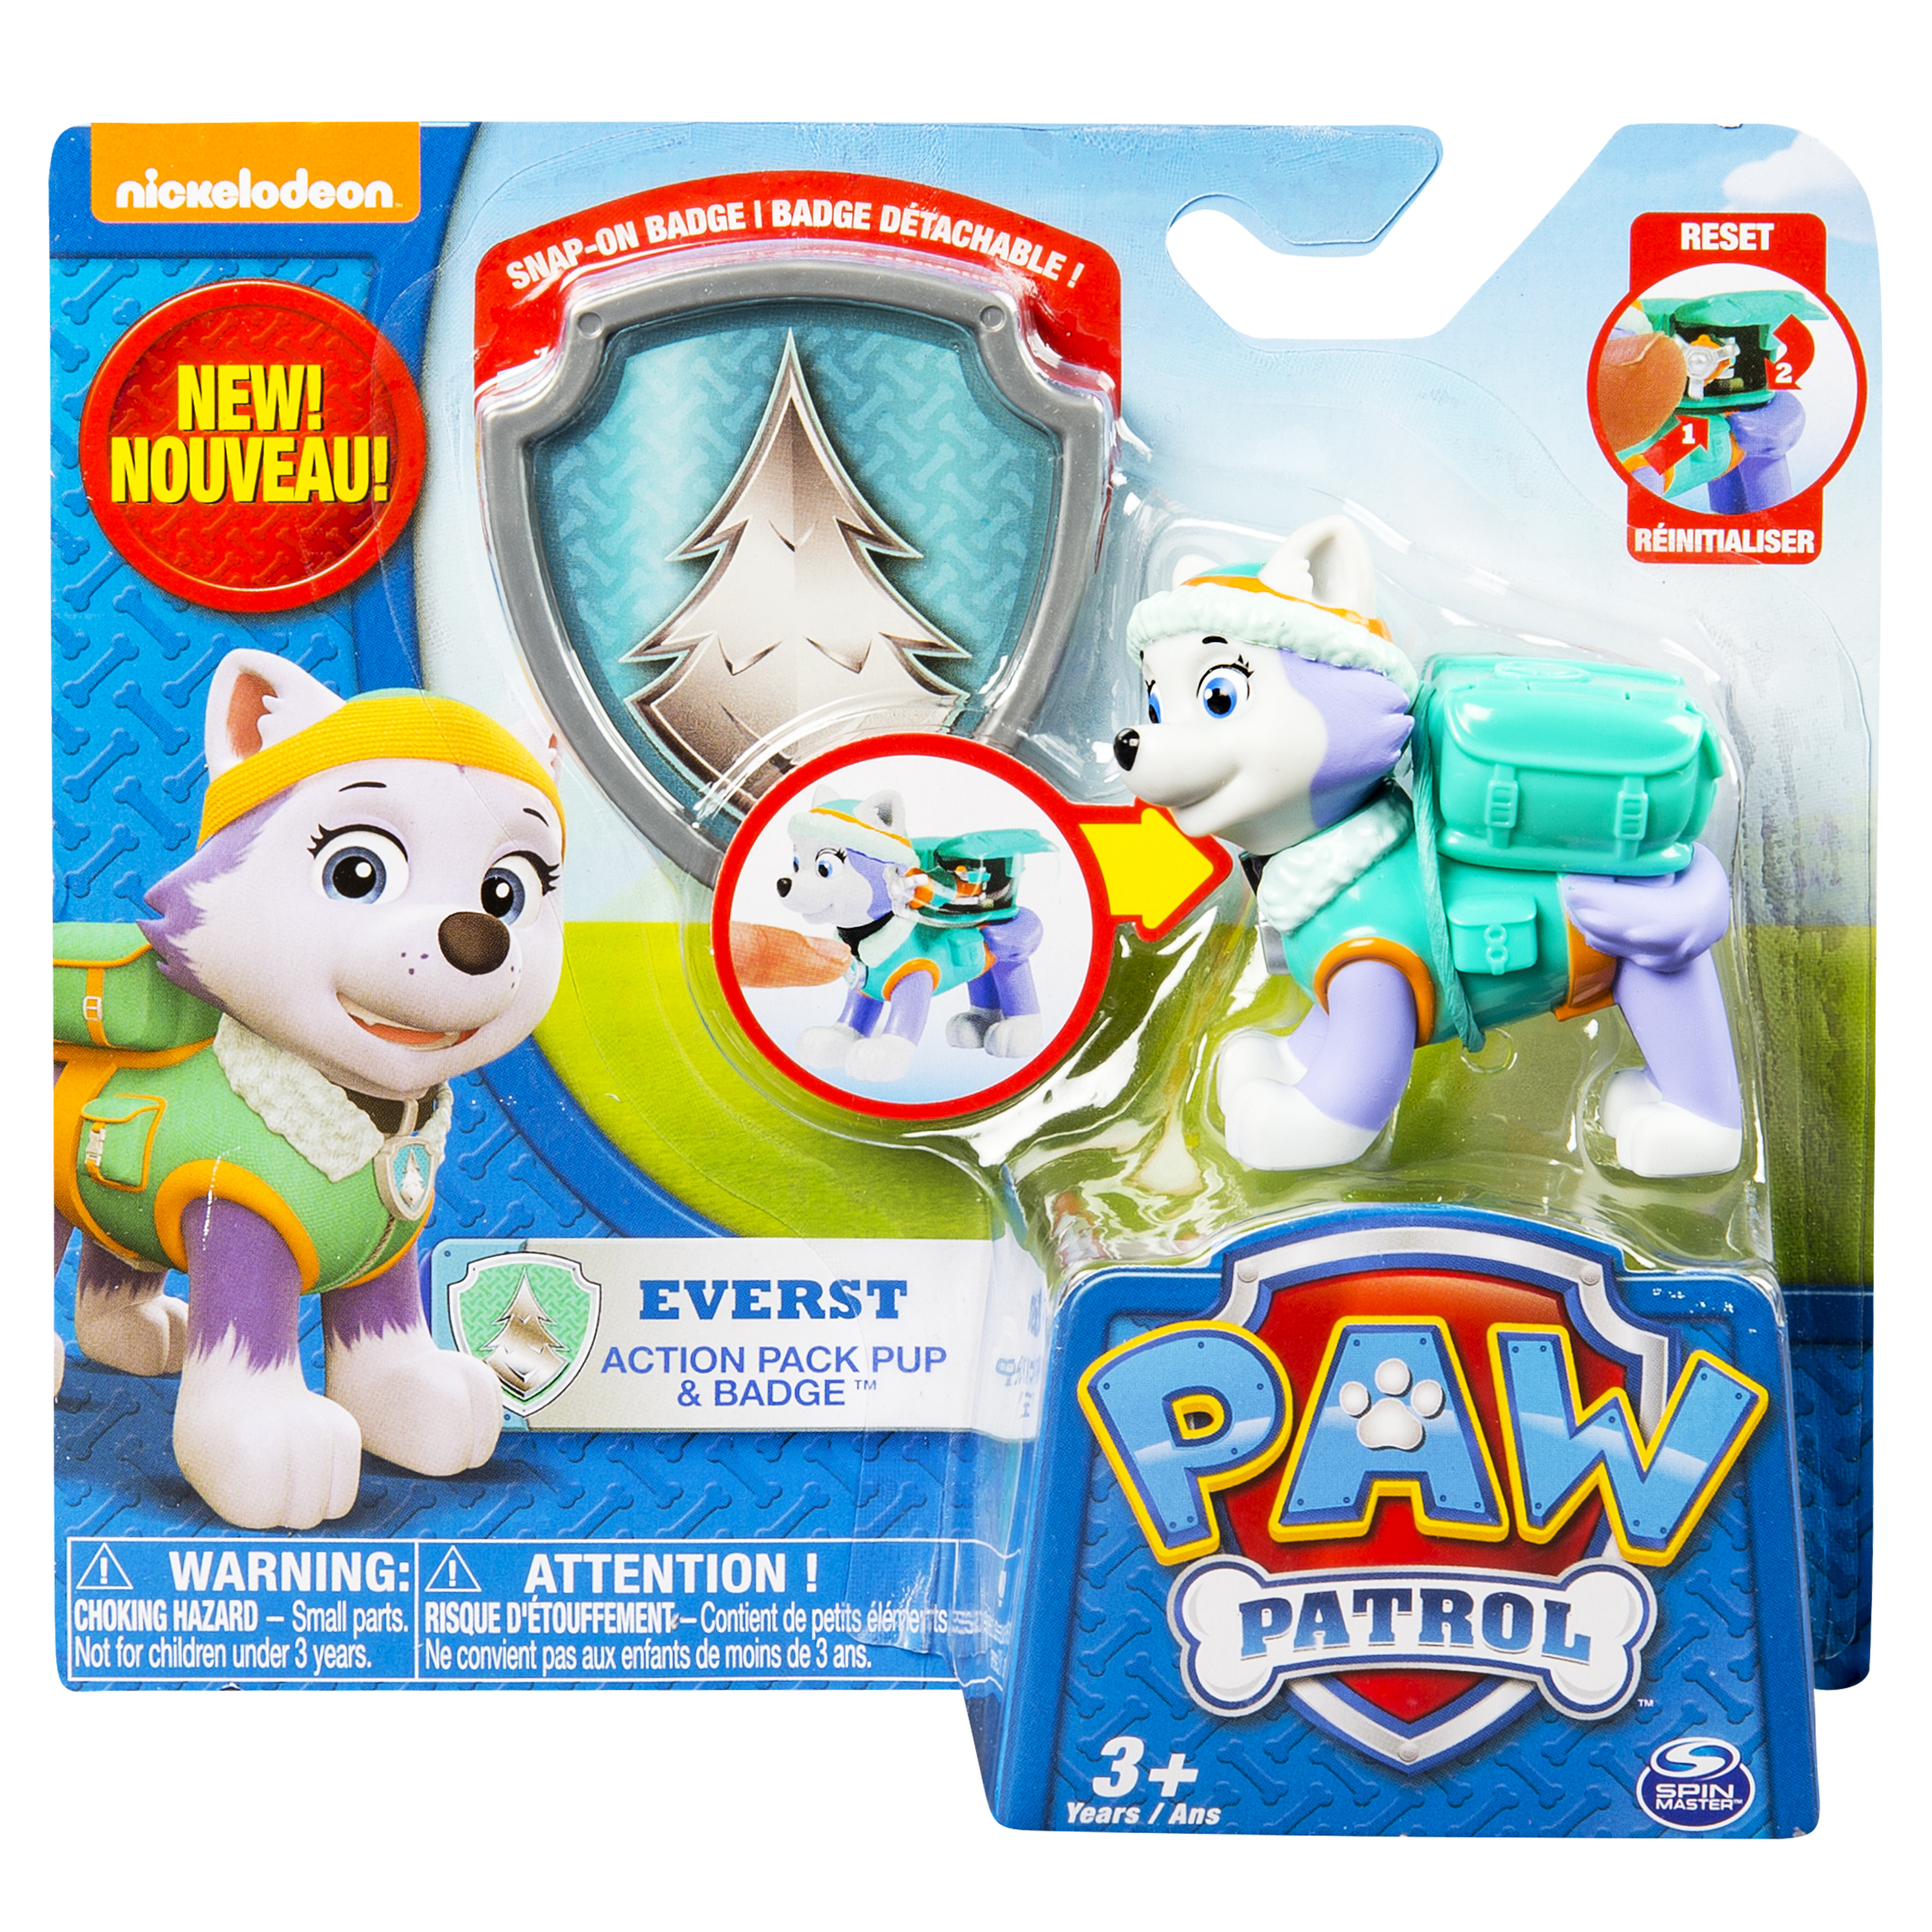 Paw patrol action pack pup amp badge everest walmart com